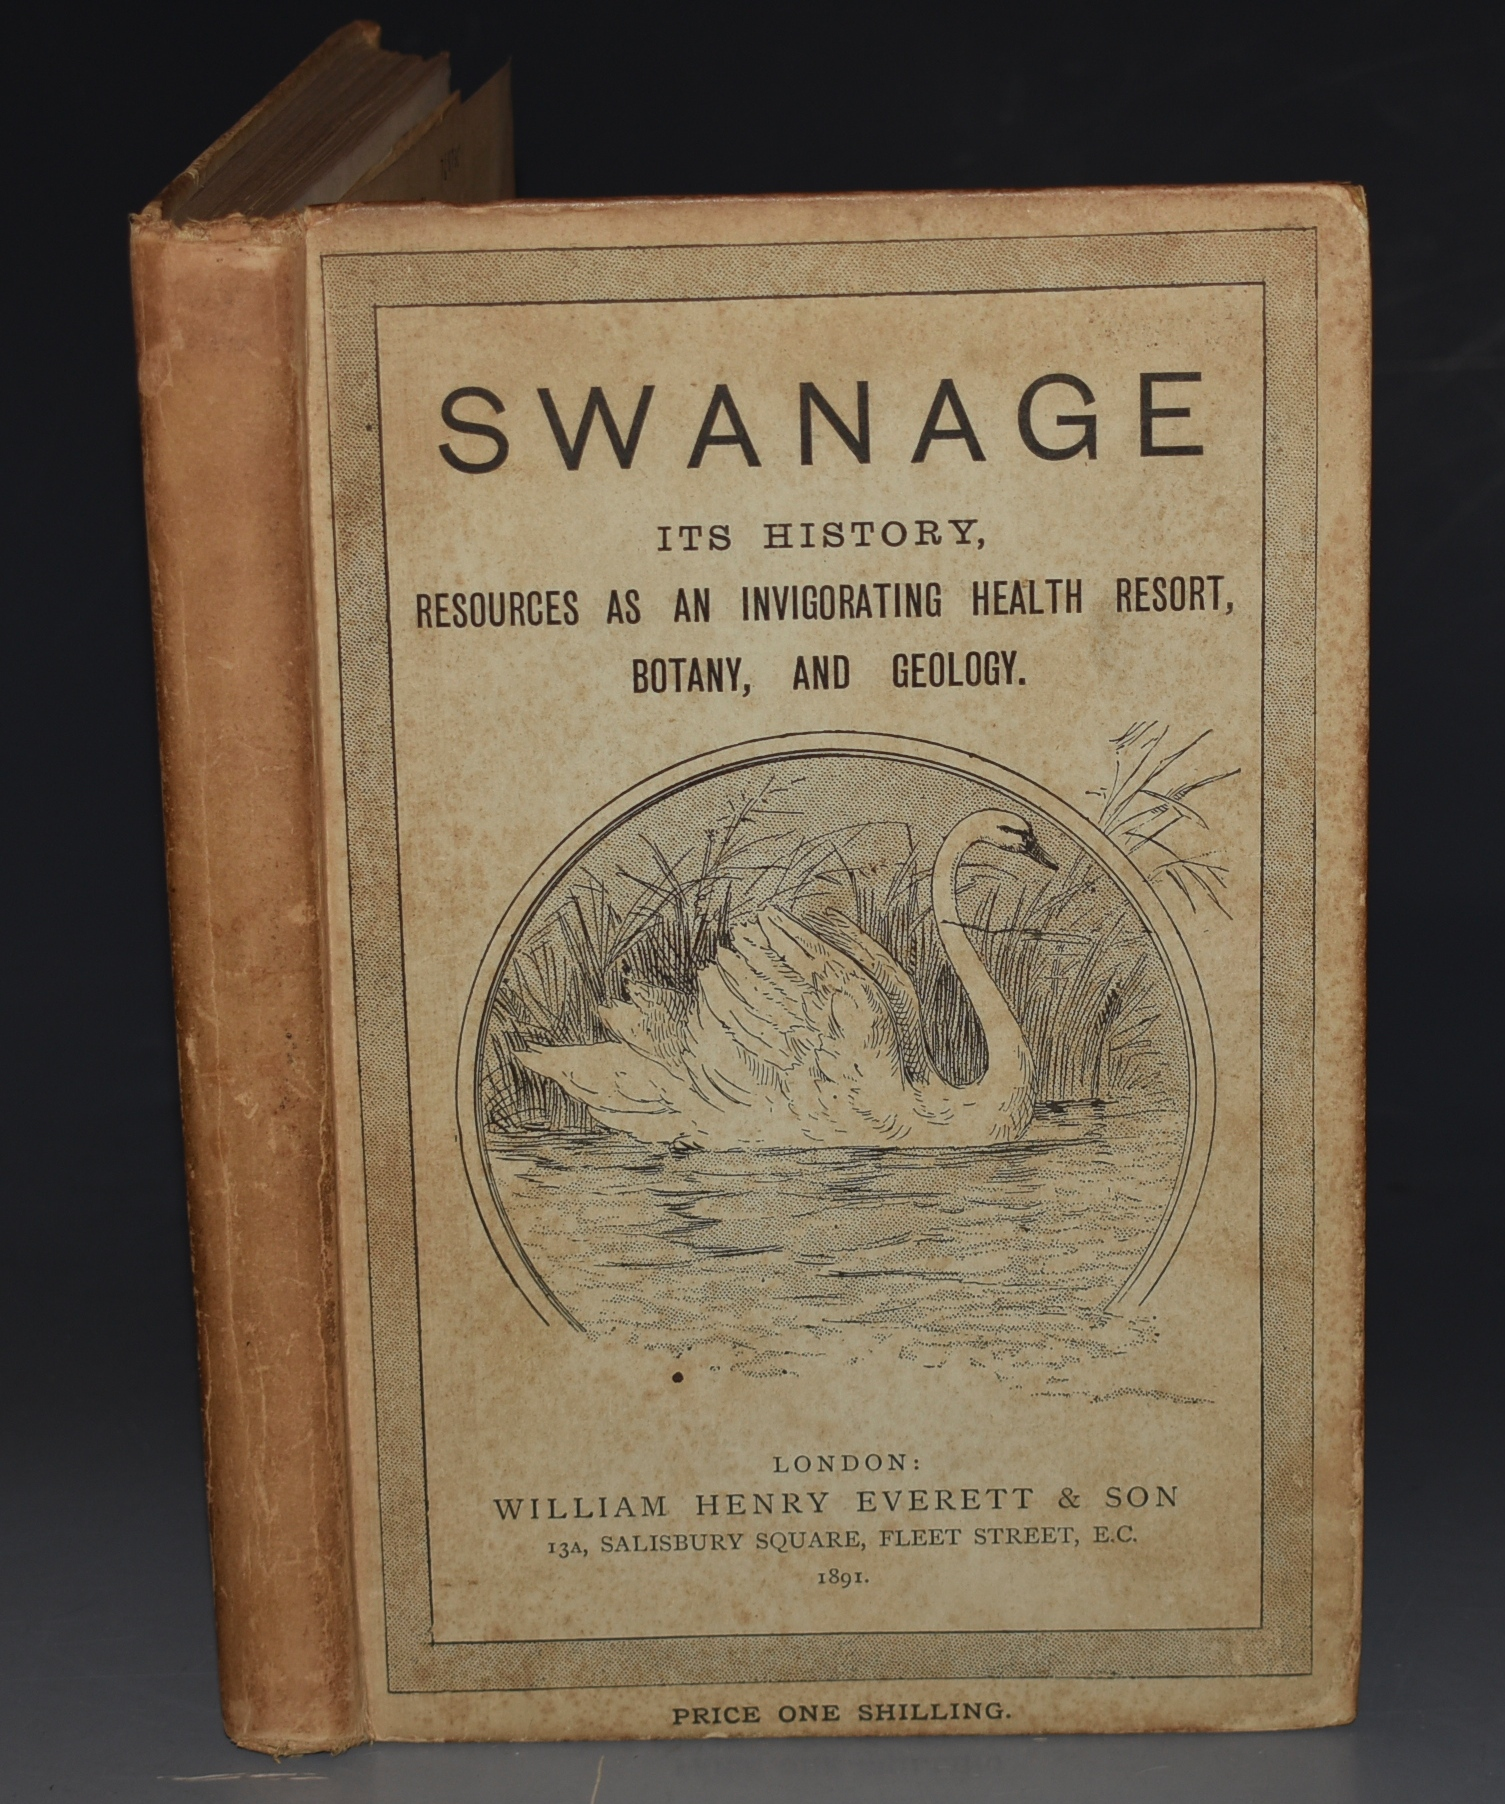 Image for Swanage. (Isle of Purbeck). Its History, Resources as an Invigorating Health Resort, Botany, and Geology.